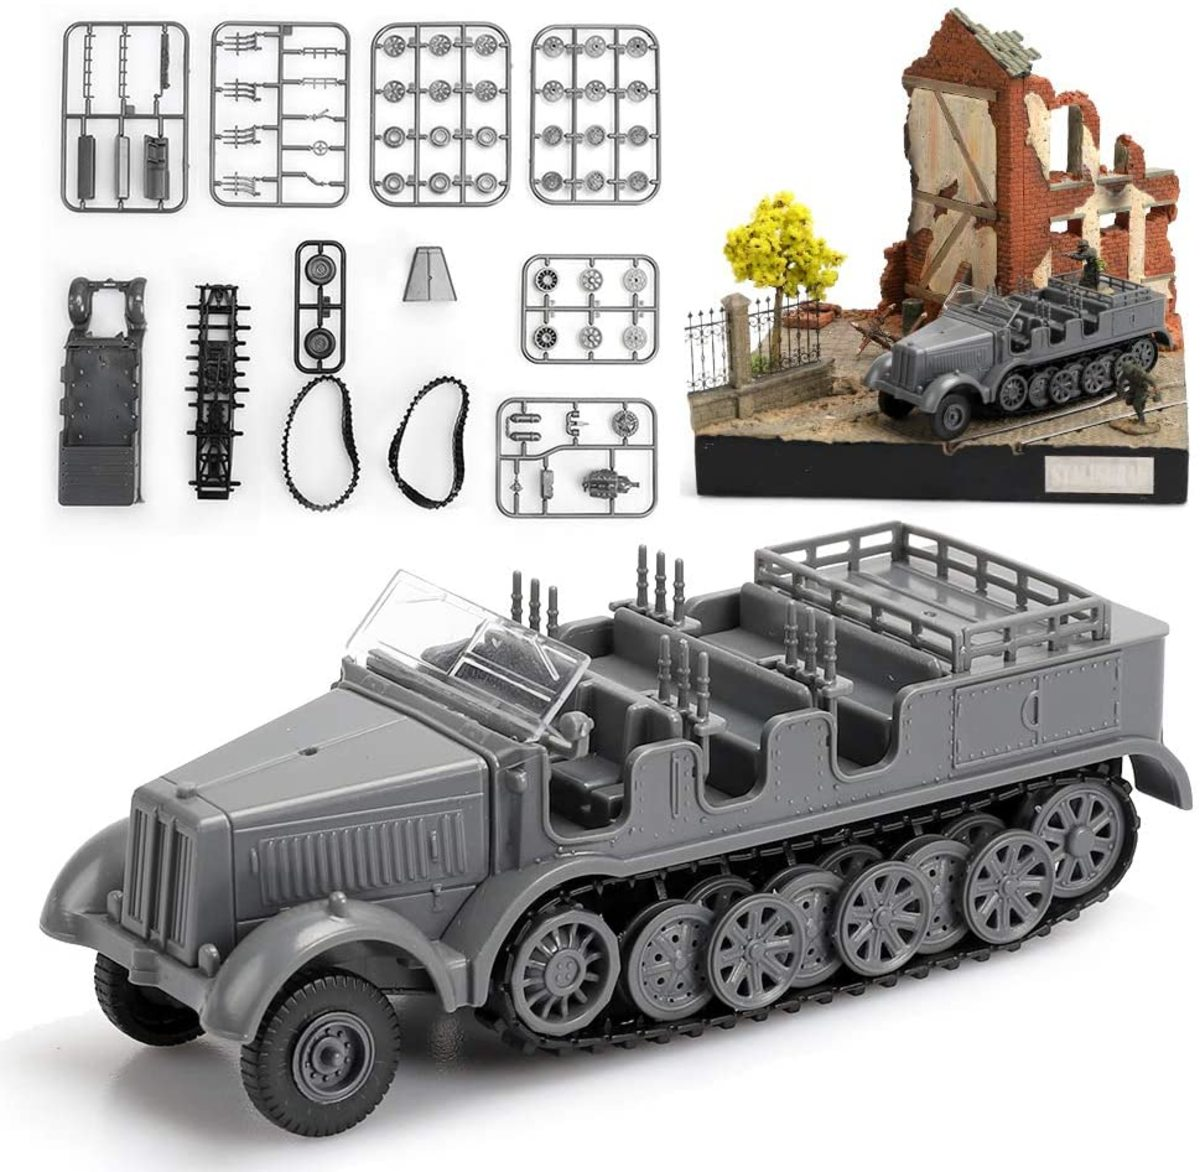 Plastic model kit builds a reasonable transporter for your German troops or 88mm gun. — Just five bucks!